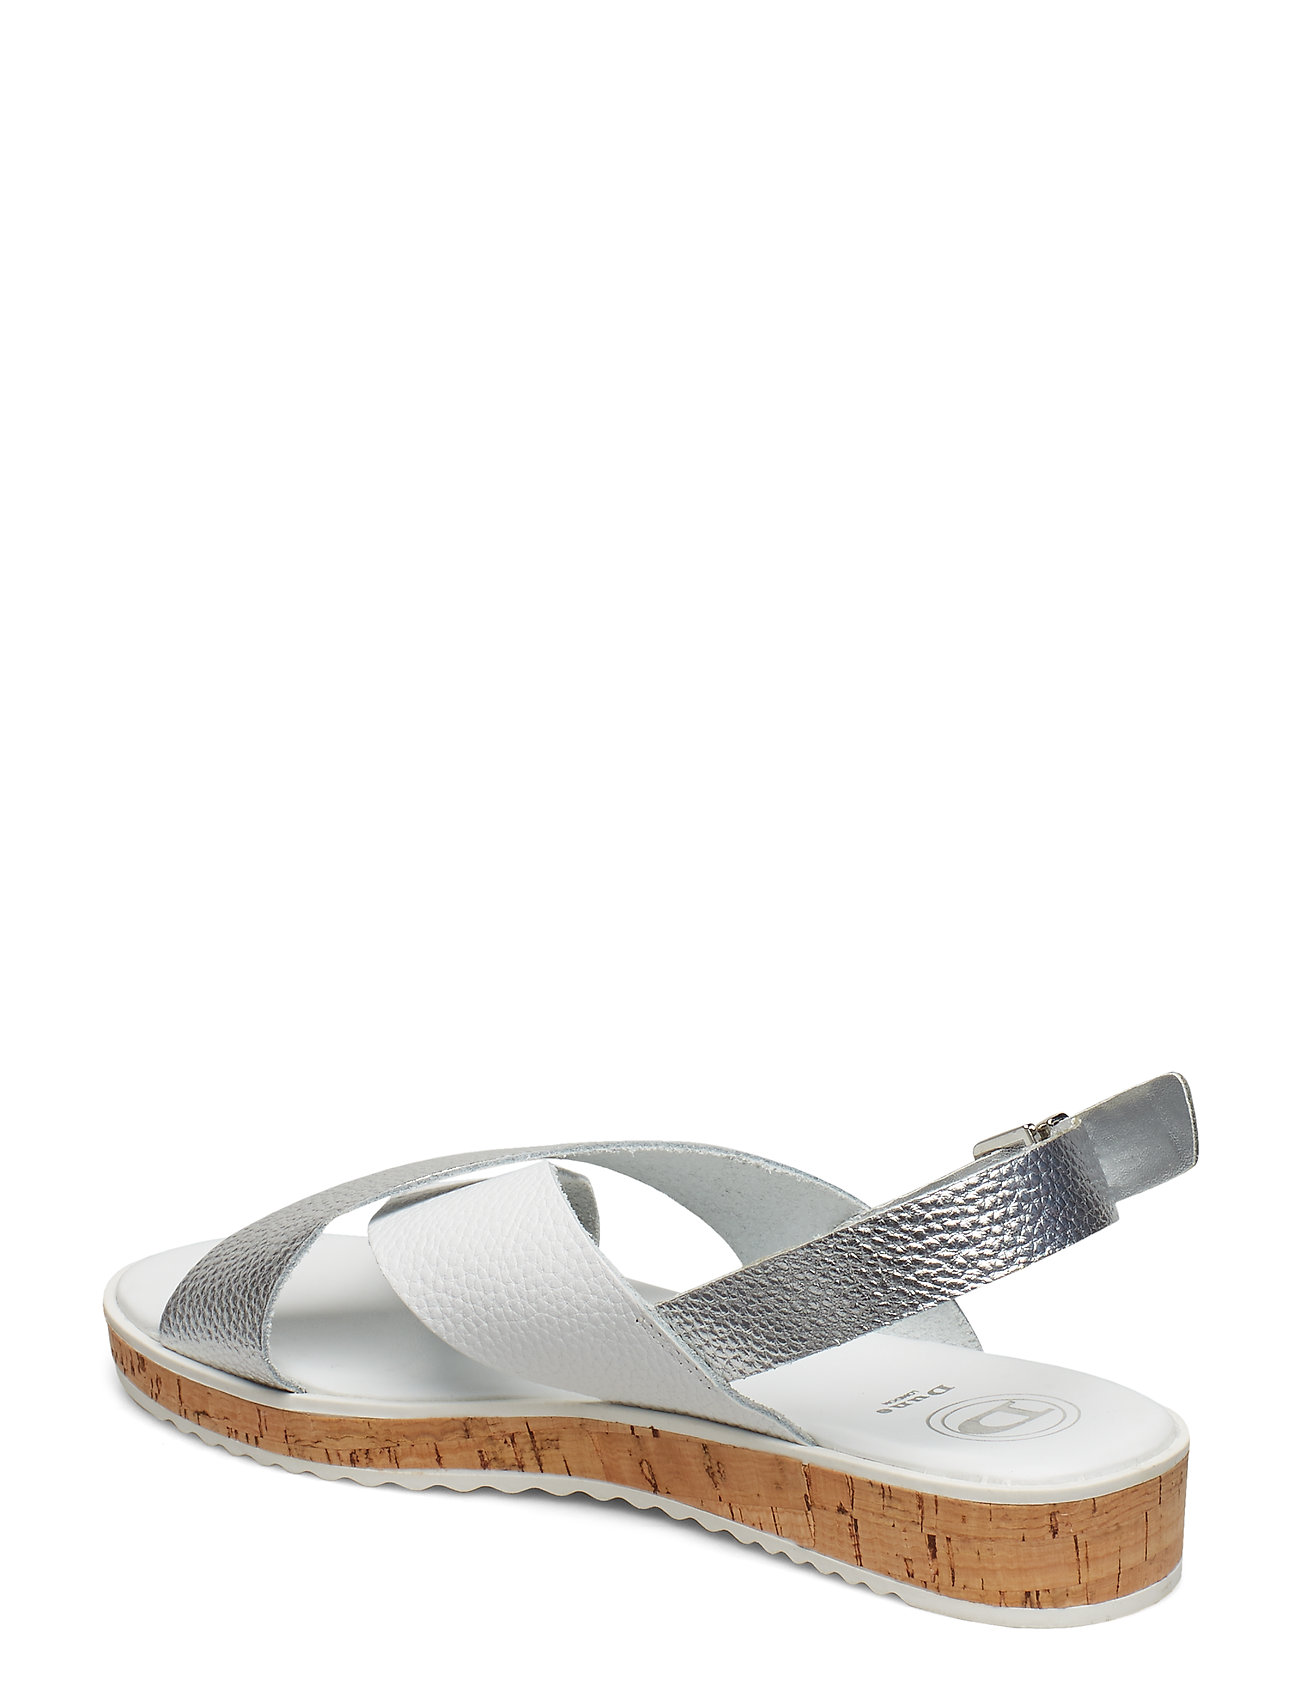 Dune London Lorde - Sandaler White